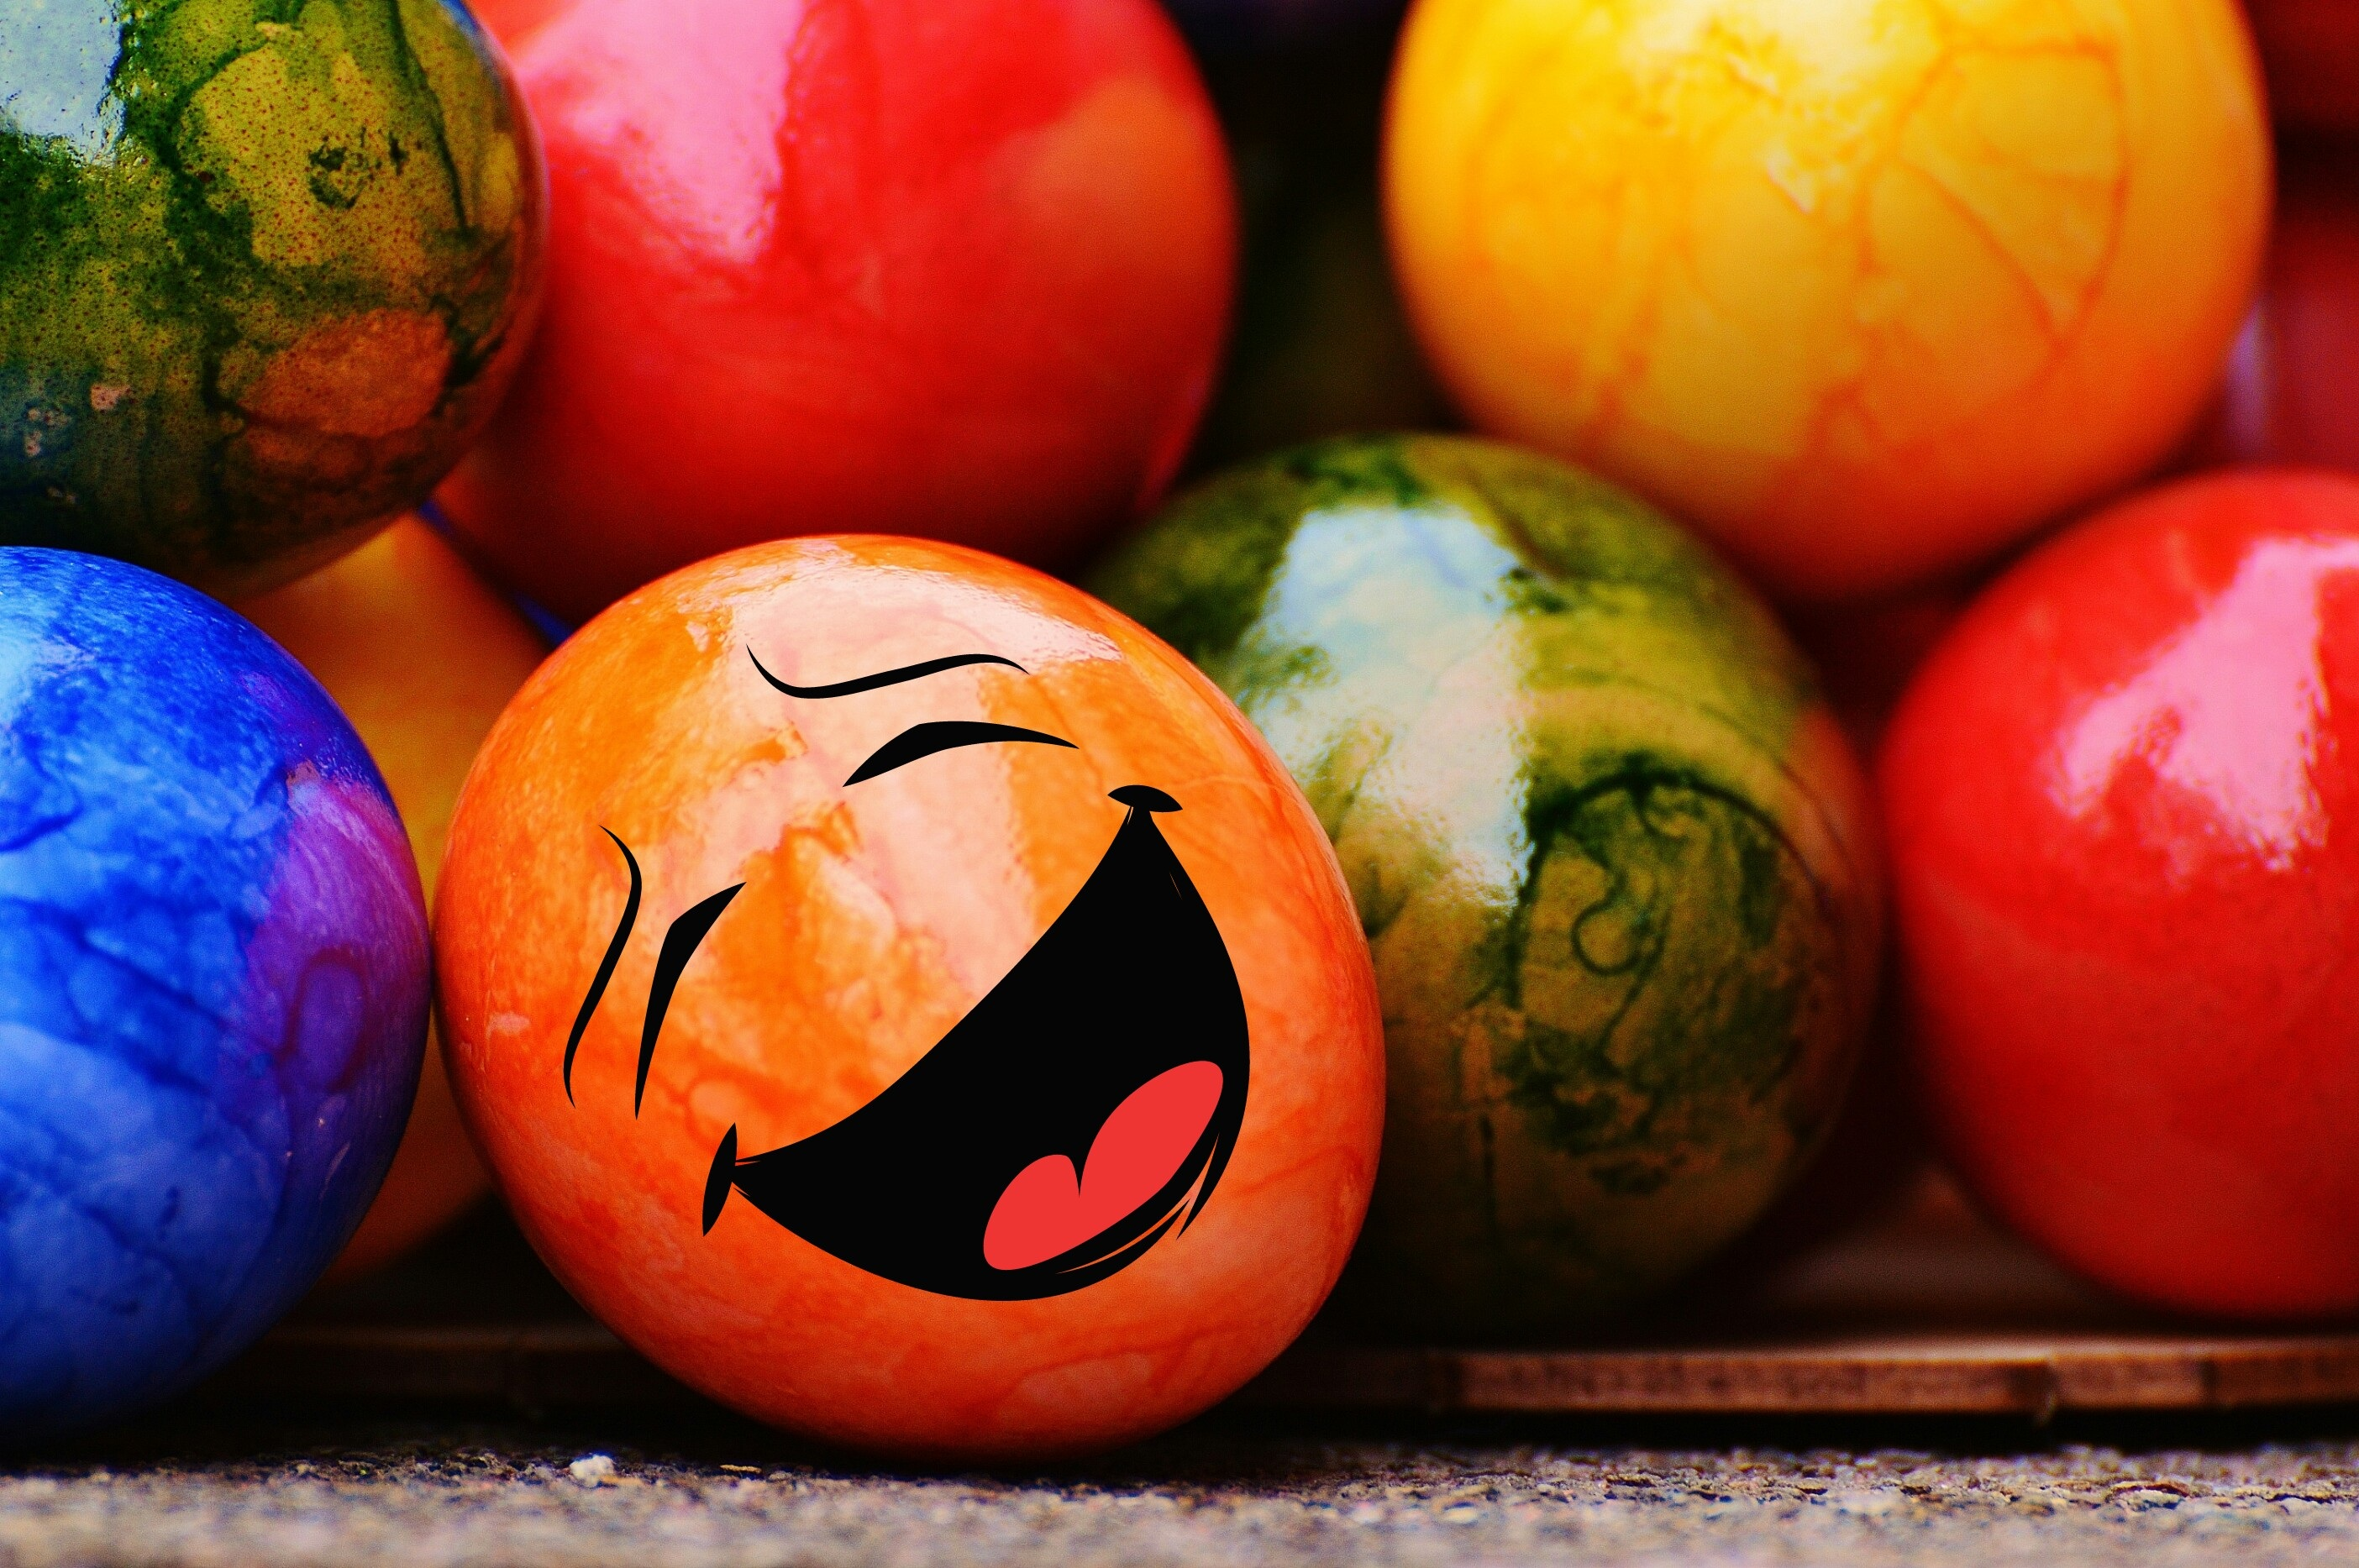 148818 Screensavers and Wallpapers Emoticon for phone. Download Holidays, Easter, Emoticon, Smiley, Easter Eggs pictures for free